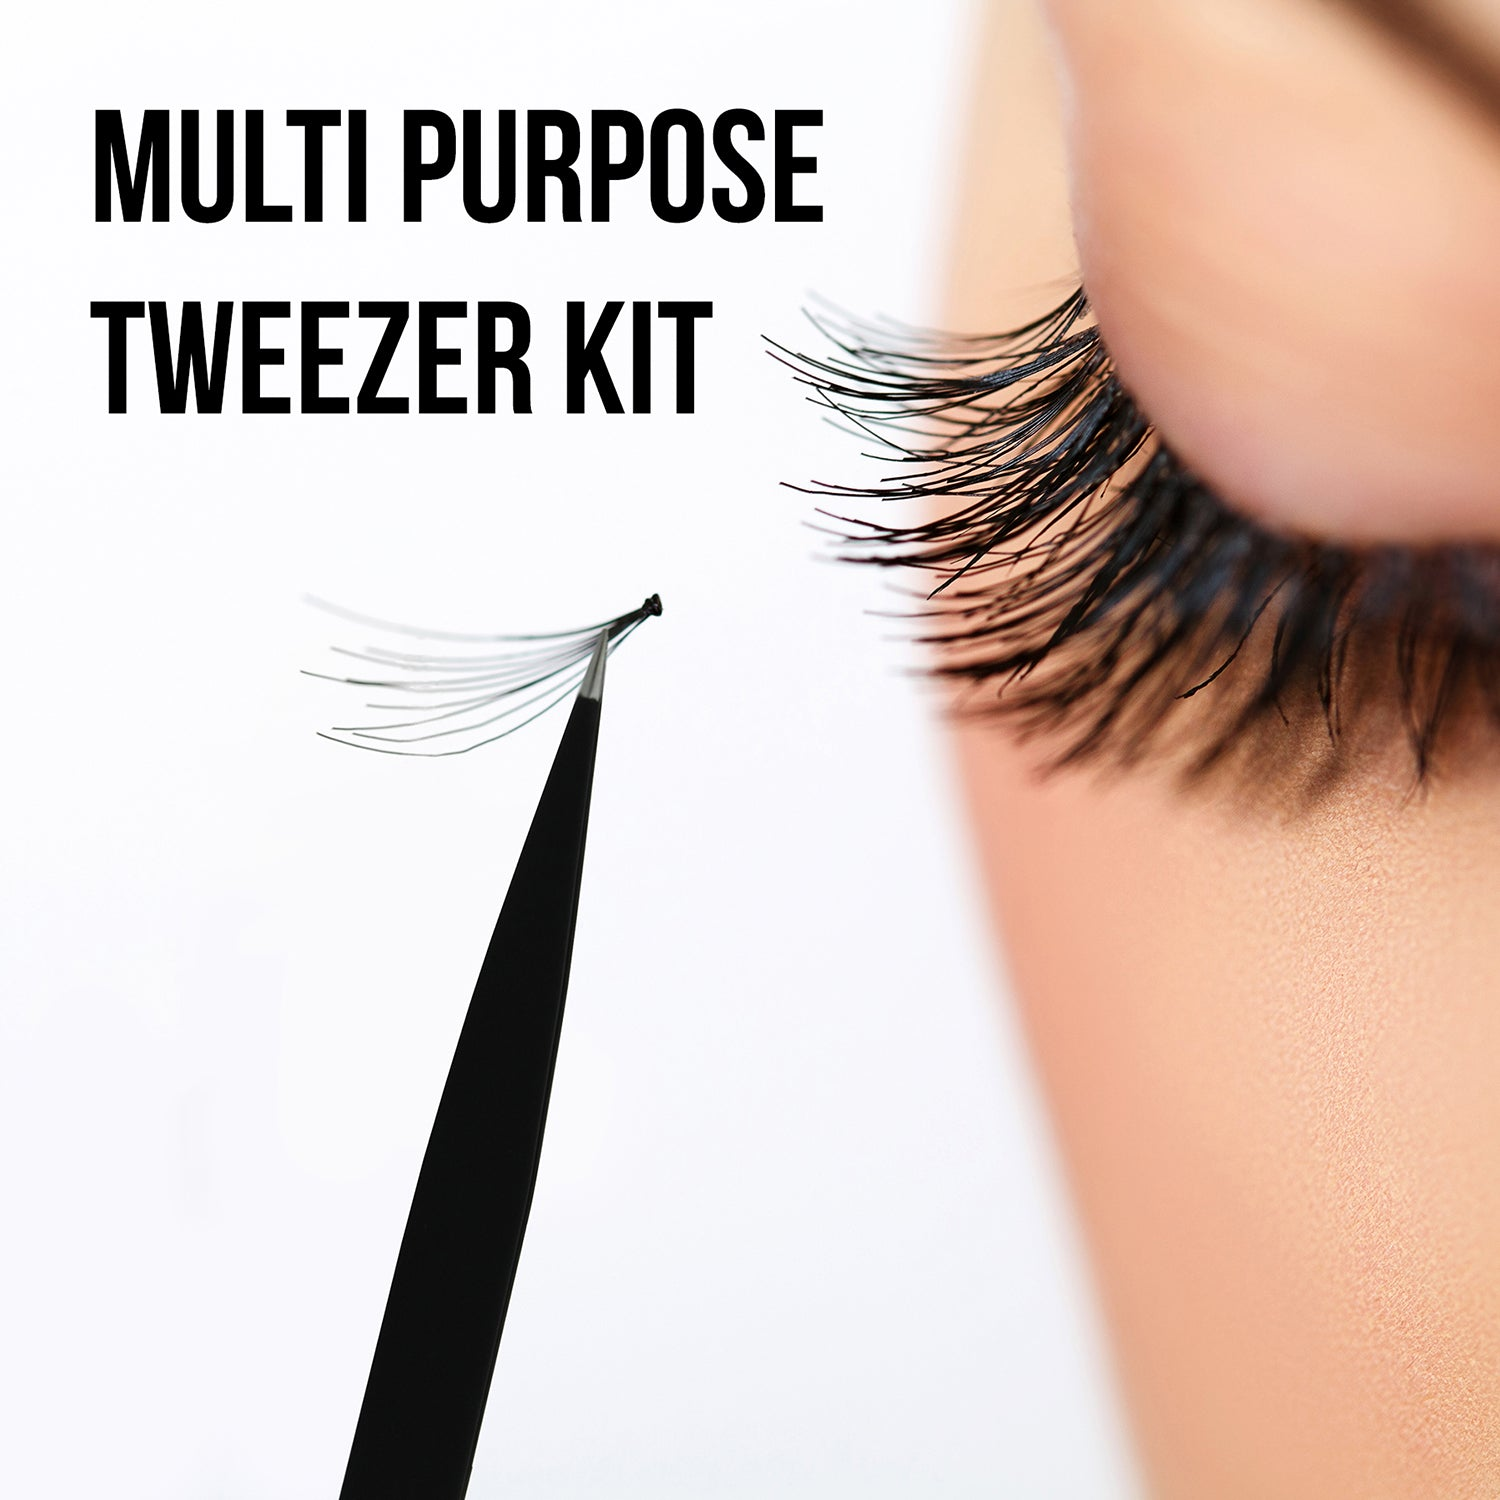 Beautyfrizz Tweezers Kit for Eyelashes